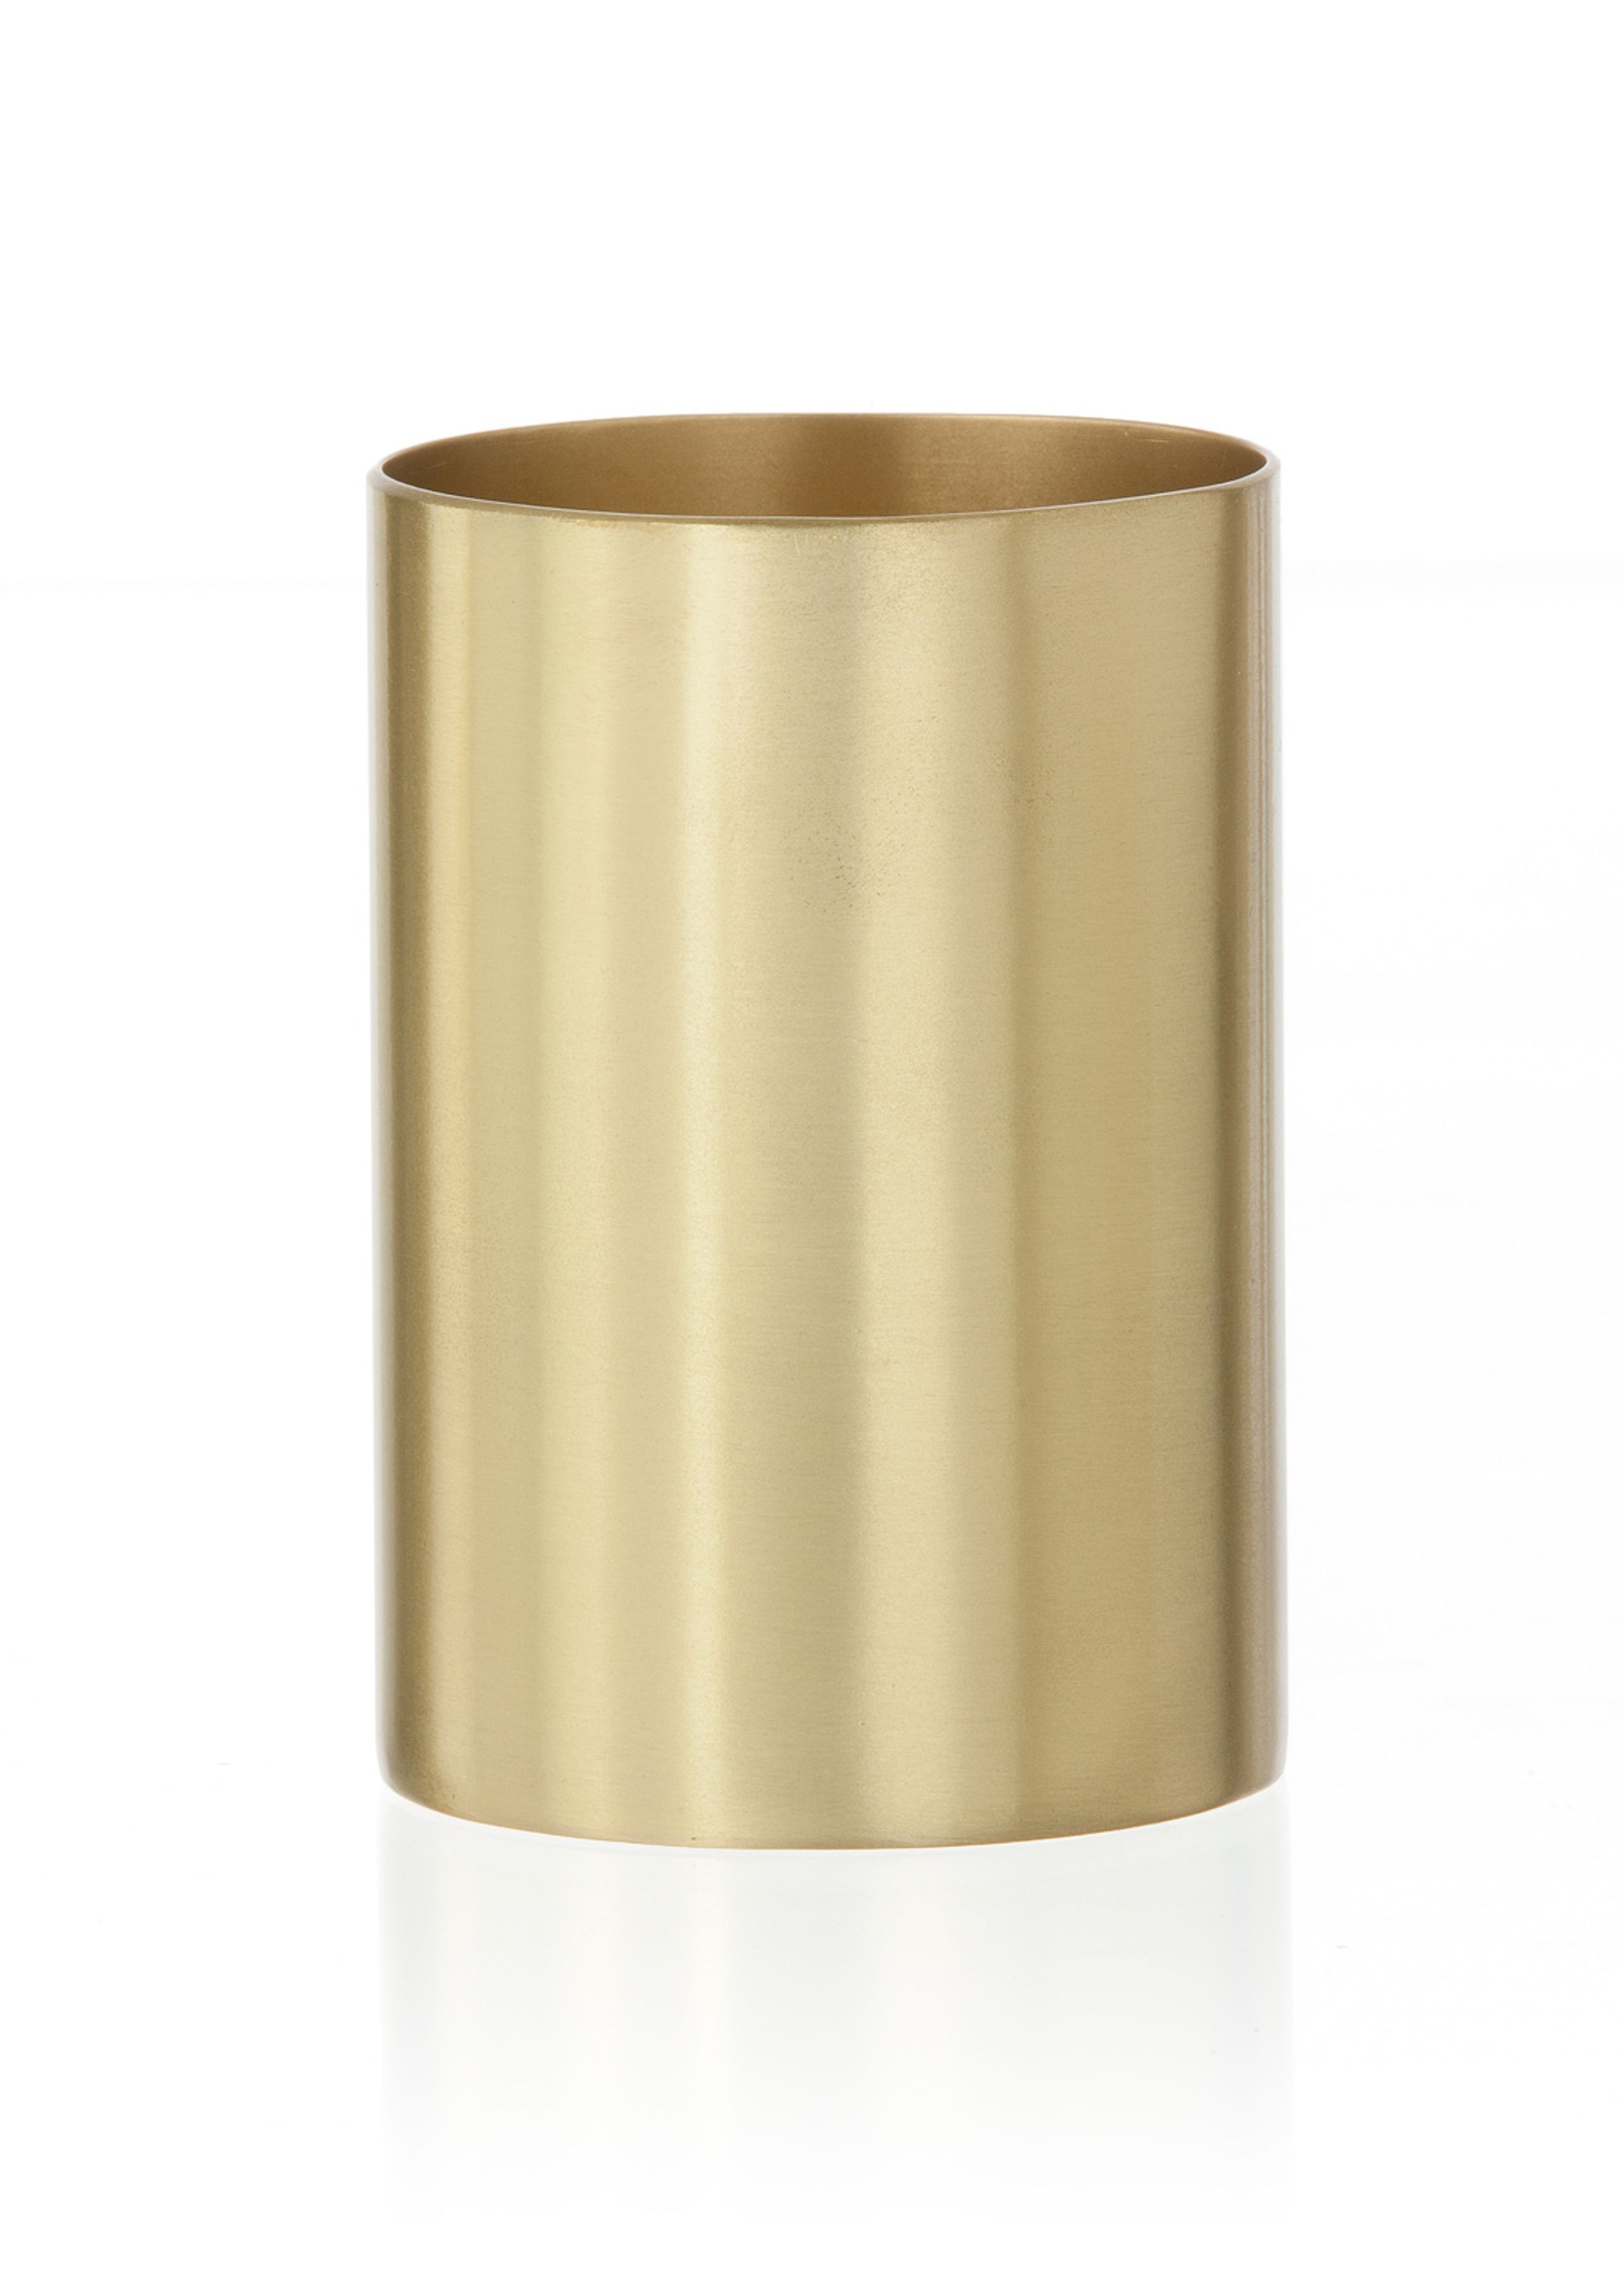 Image of   Brass Cup